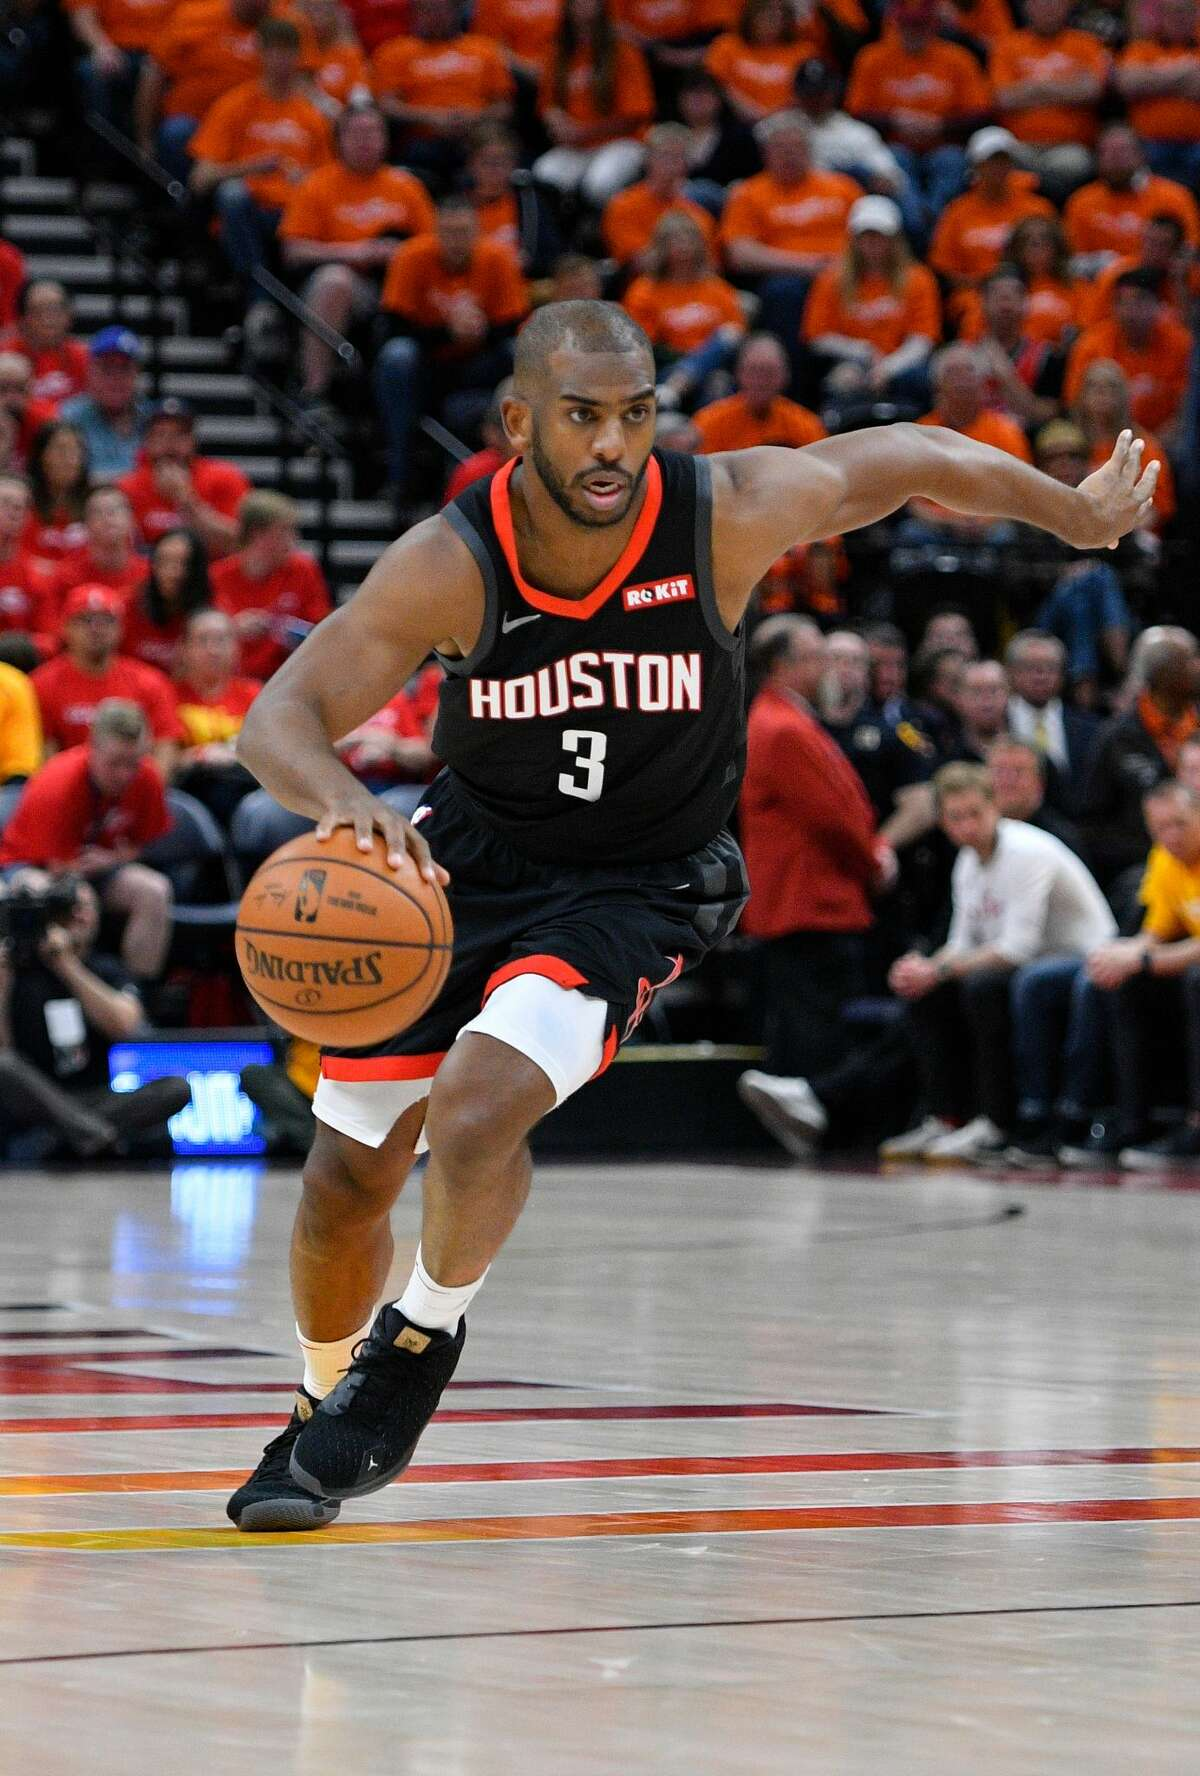 SALT LAKE CITY, UT - APRIL 20: Chris Paul #3 of the Houston Rockets drives to the basket in the second half of Game Three during the first round of the 2019 NBA Western Conference Playoffs against the Utah Jazz at Vivint Smart Home Arena on April 20, 2019 in Salt Lake City, Utah. NOTE TO USER: User expressly acknowledges and agrees that, by downloading and or using this photograph, User is consenting to the terms and conditions of the Getty Images License Agreement. (Photo by Gene Sweeney Jr./Getty Images)